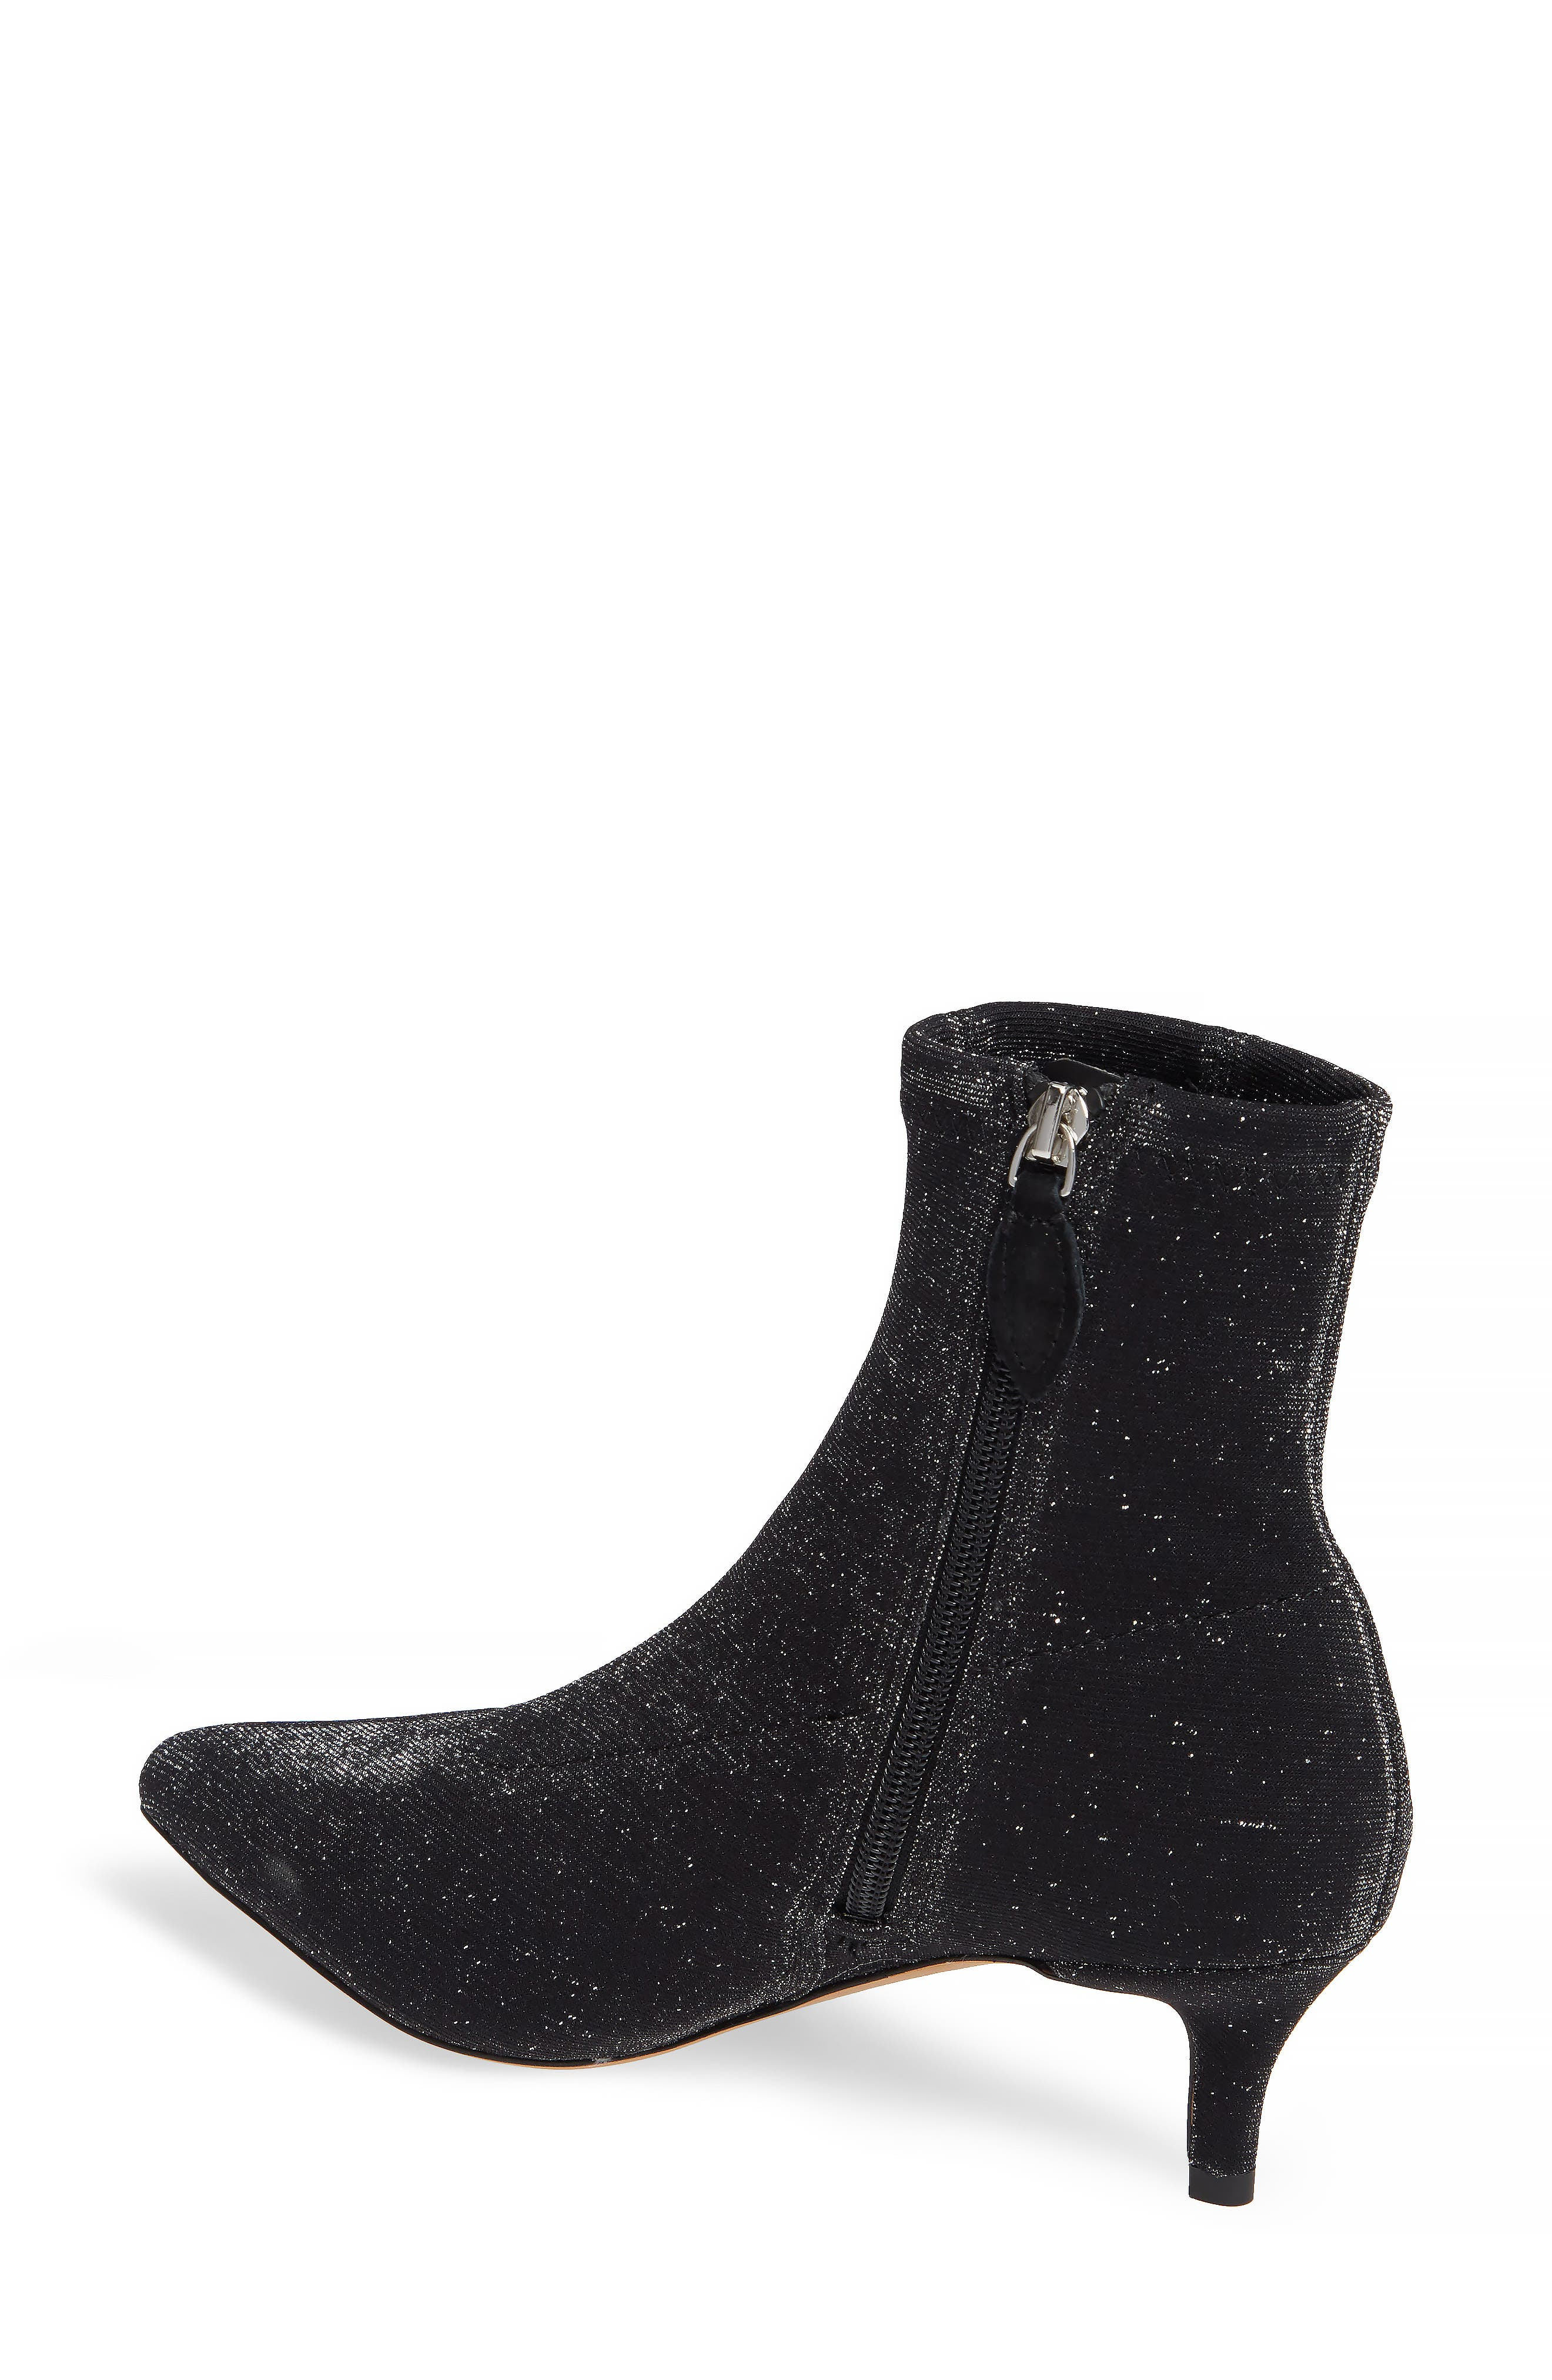 REBECCA MINKOFF, Sayres Bootie, Alternate thumbnail 2, color, BLACK FABRIC